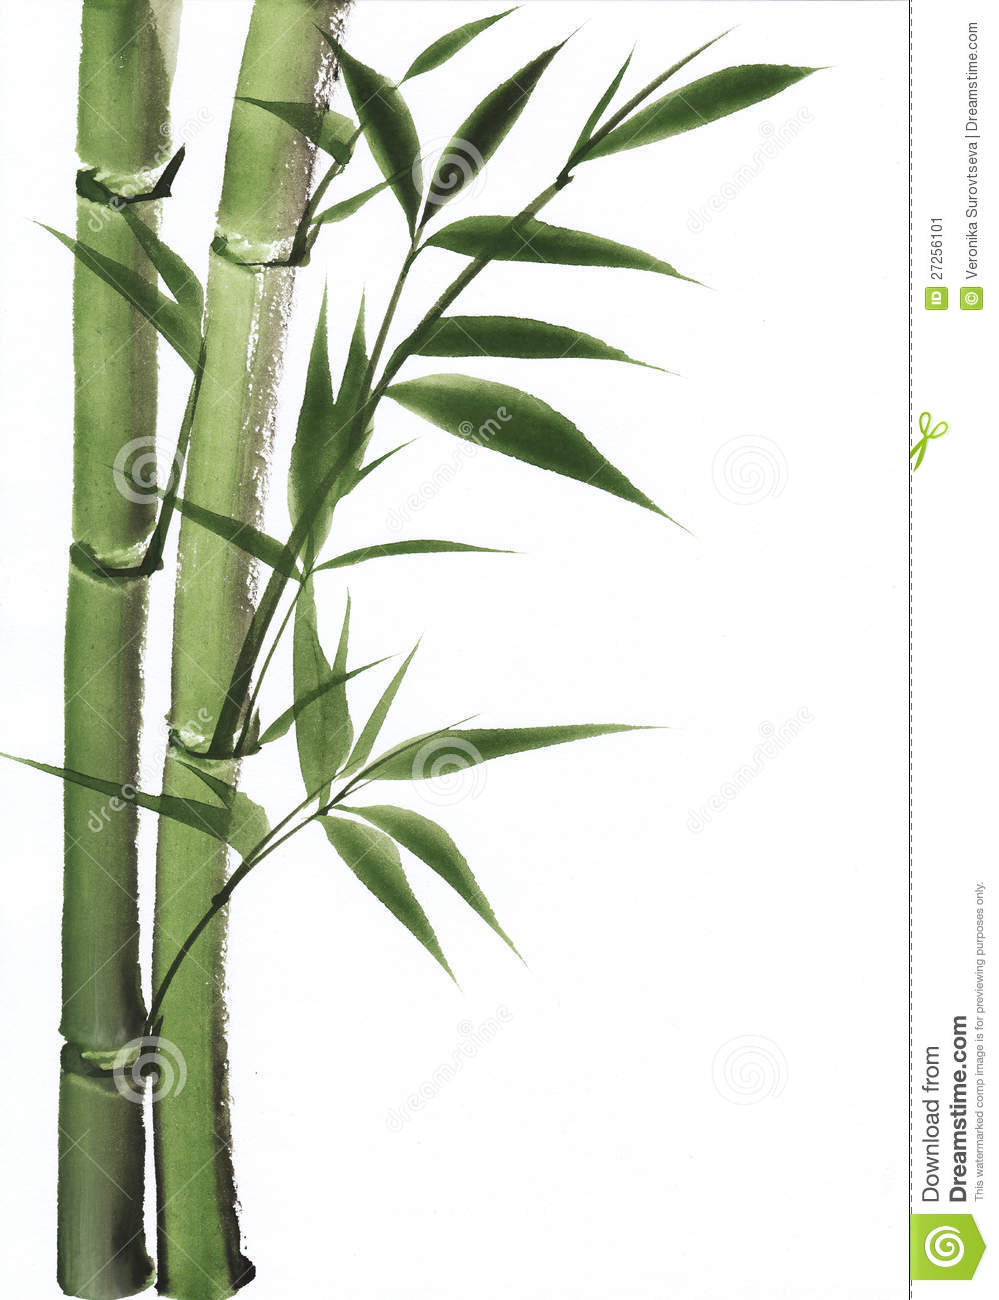 watercolor painting of bamboo stock illustration image. Black Bedroom Furniture Sets. Home Design Ideas